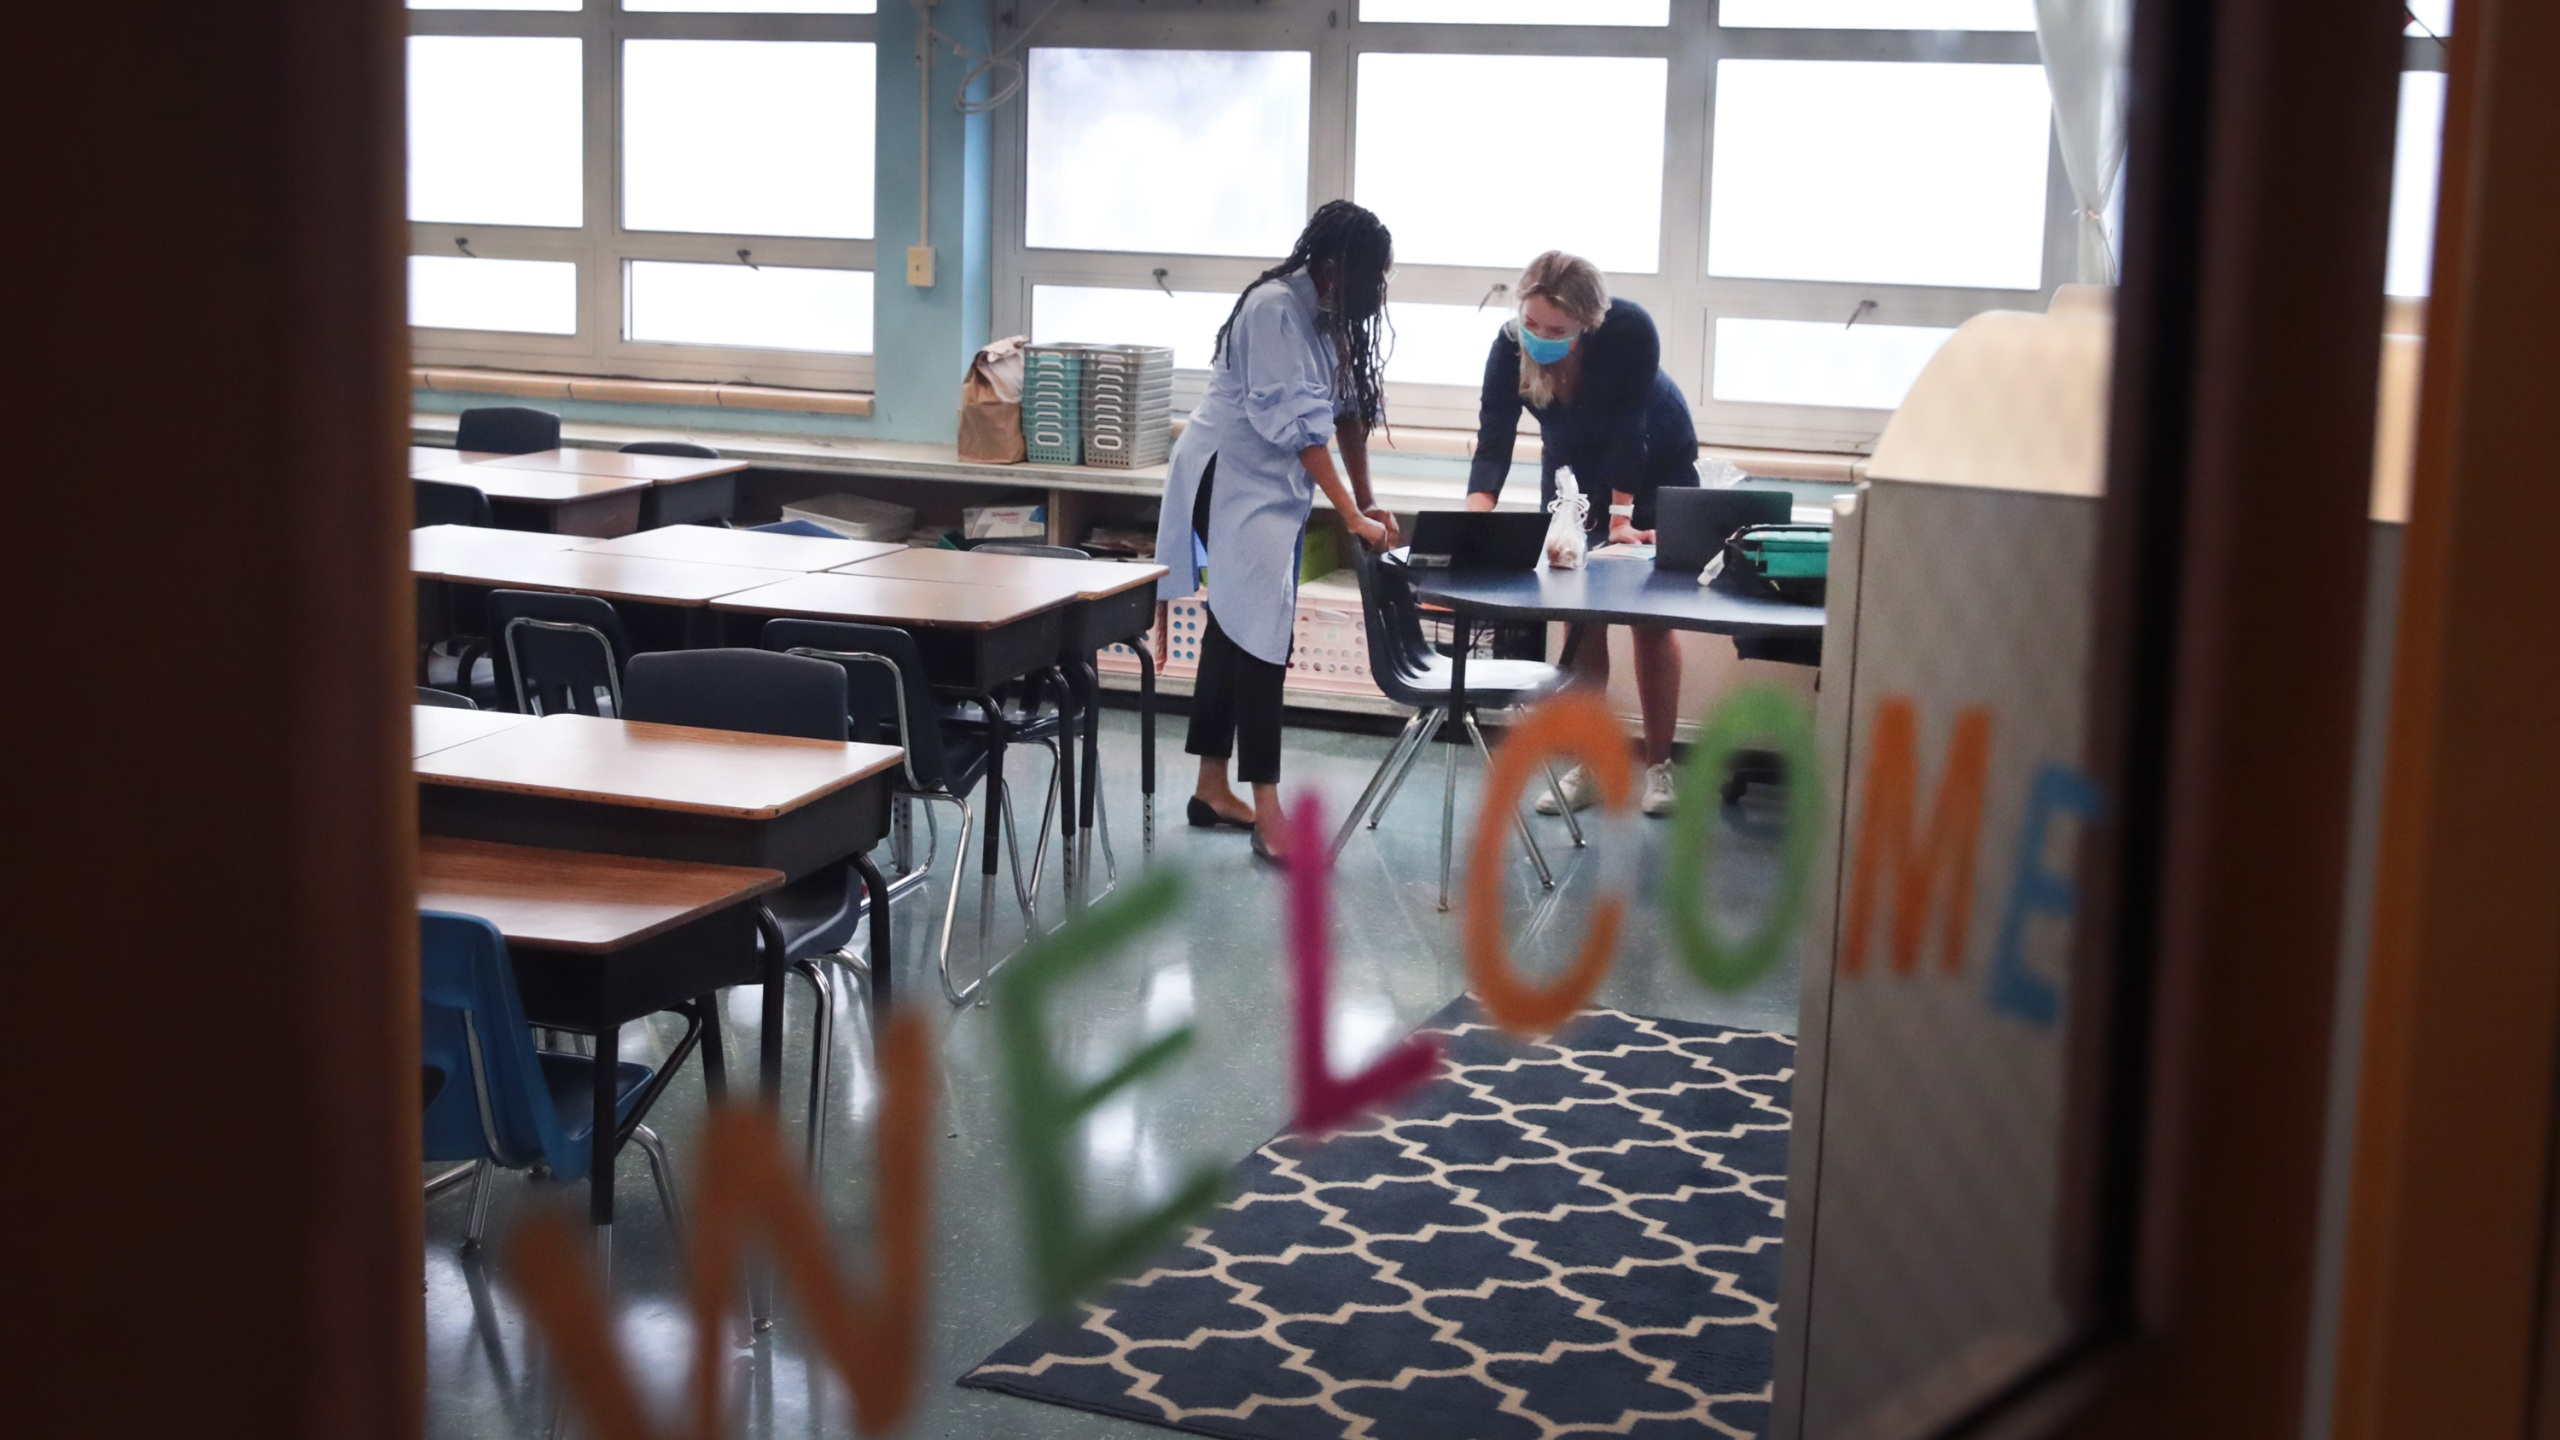 Jasmine Gilliam (L) and Lucy Baldwin, teachers at King Elementary School, prepare to teach their students remotely in empty classrooms during the first day of classes on September 08, 2020 in Chicago, Illinois. (Scott Olson/Getty Images)